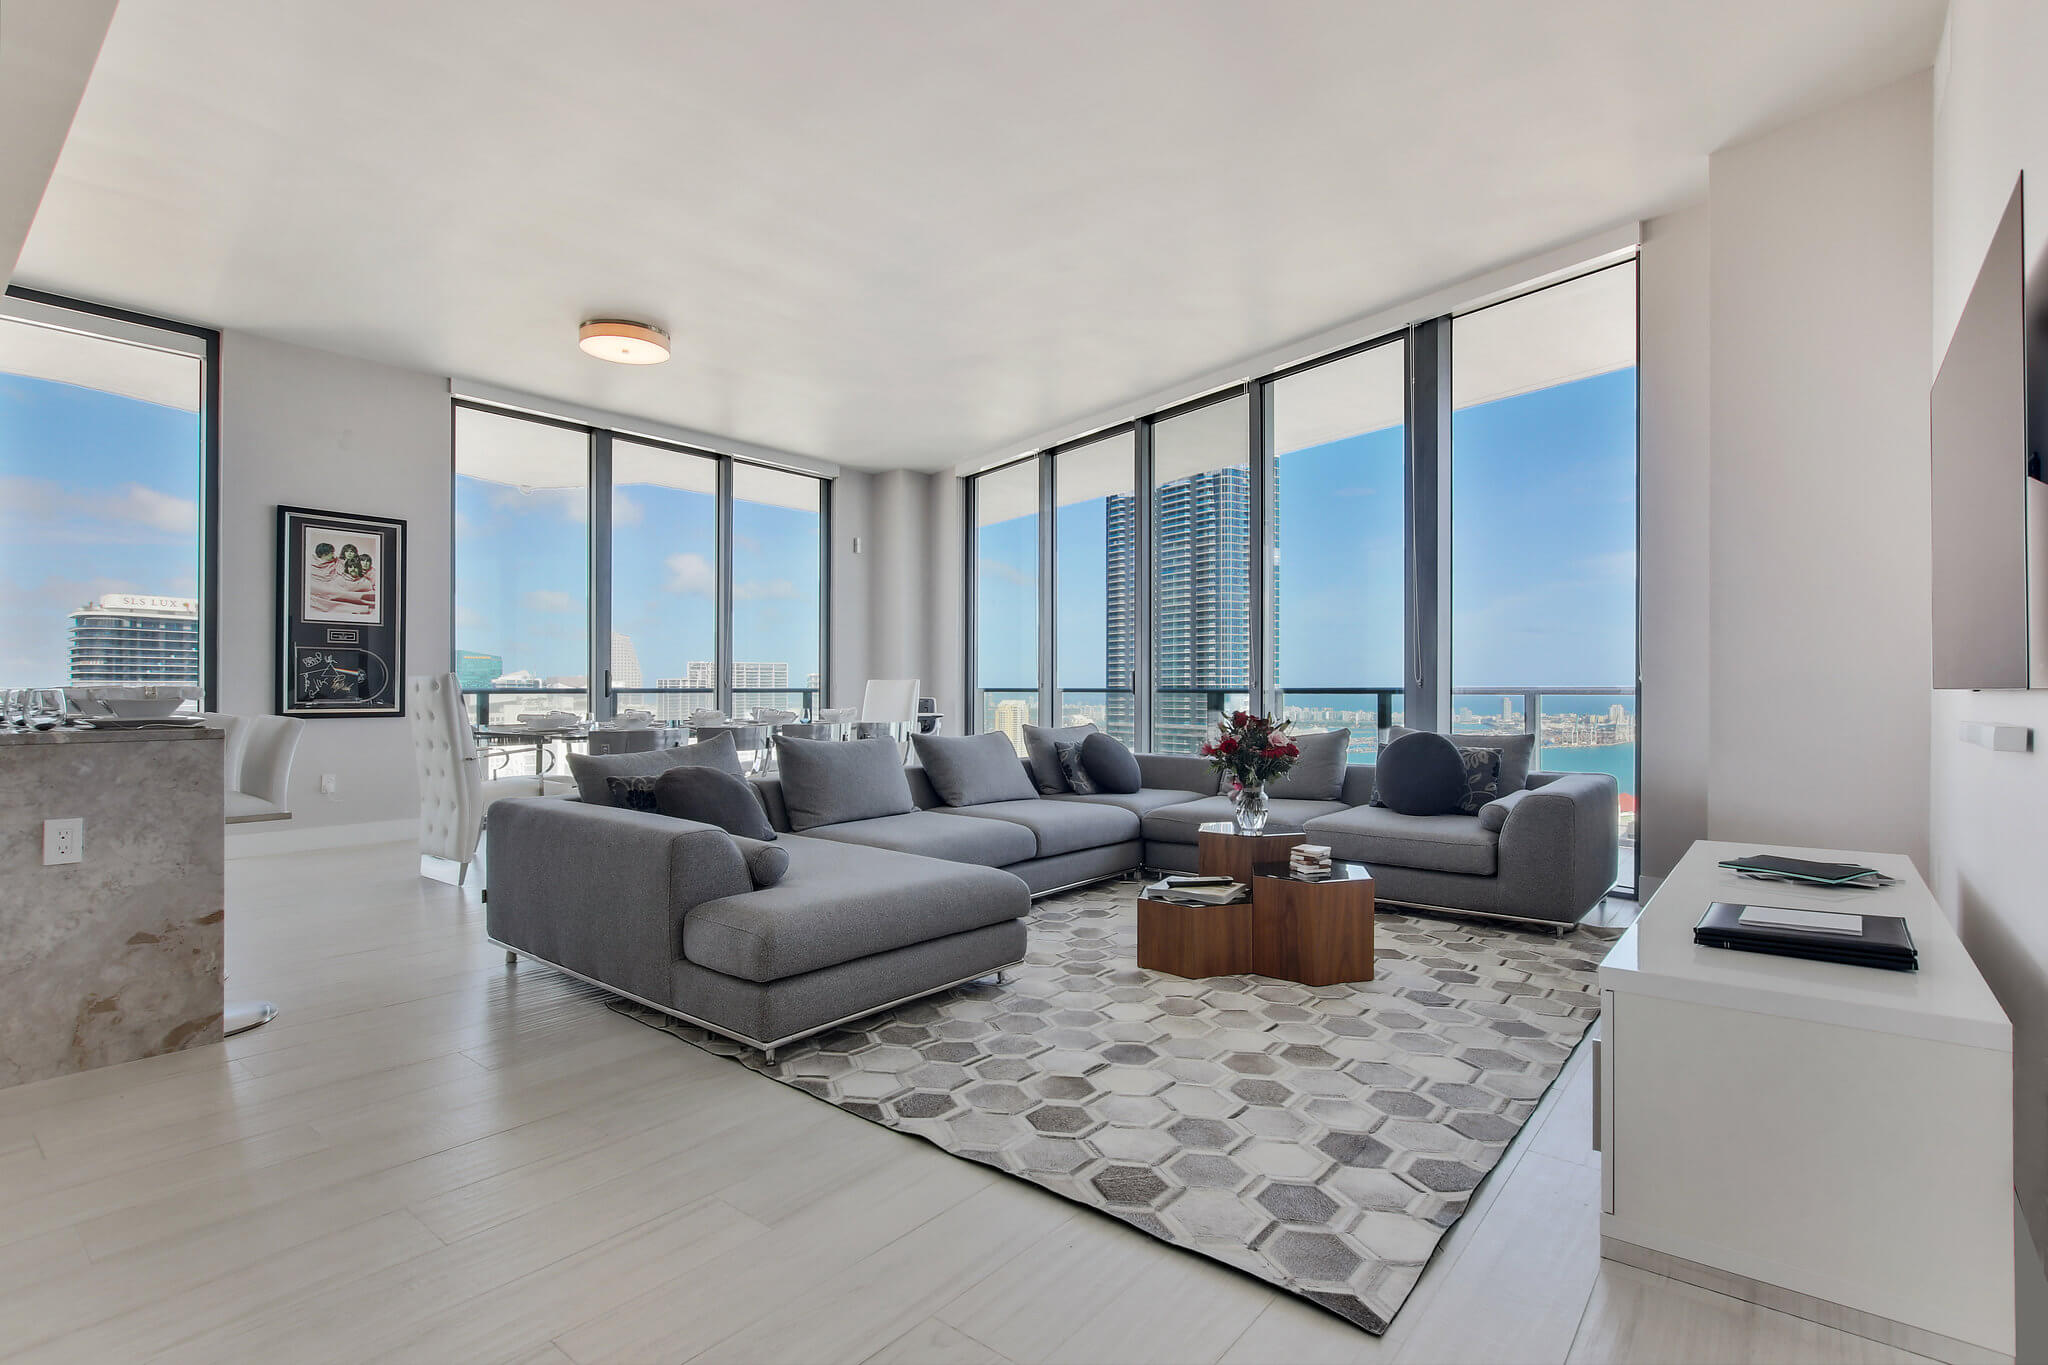 13__sls_brickell_photo_by_MiamiRealEstatePhotographers.com